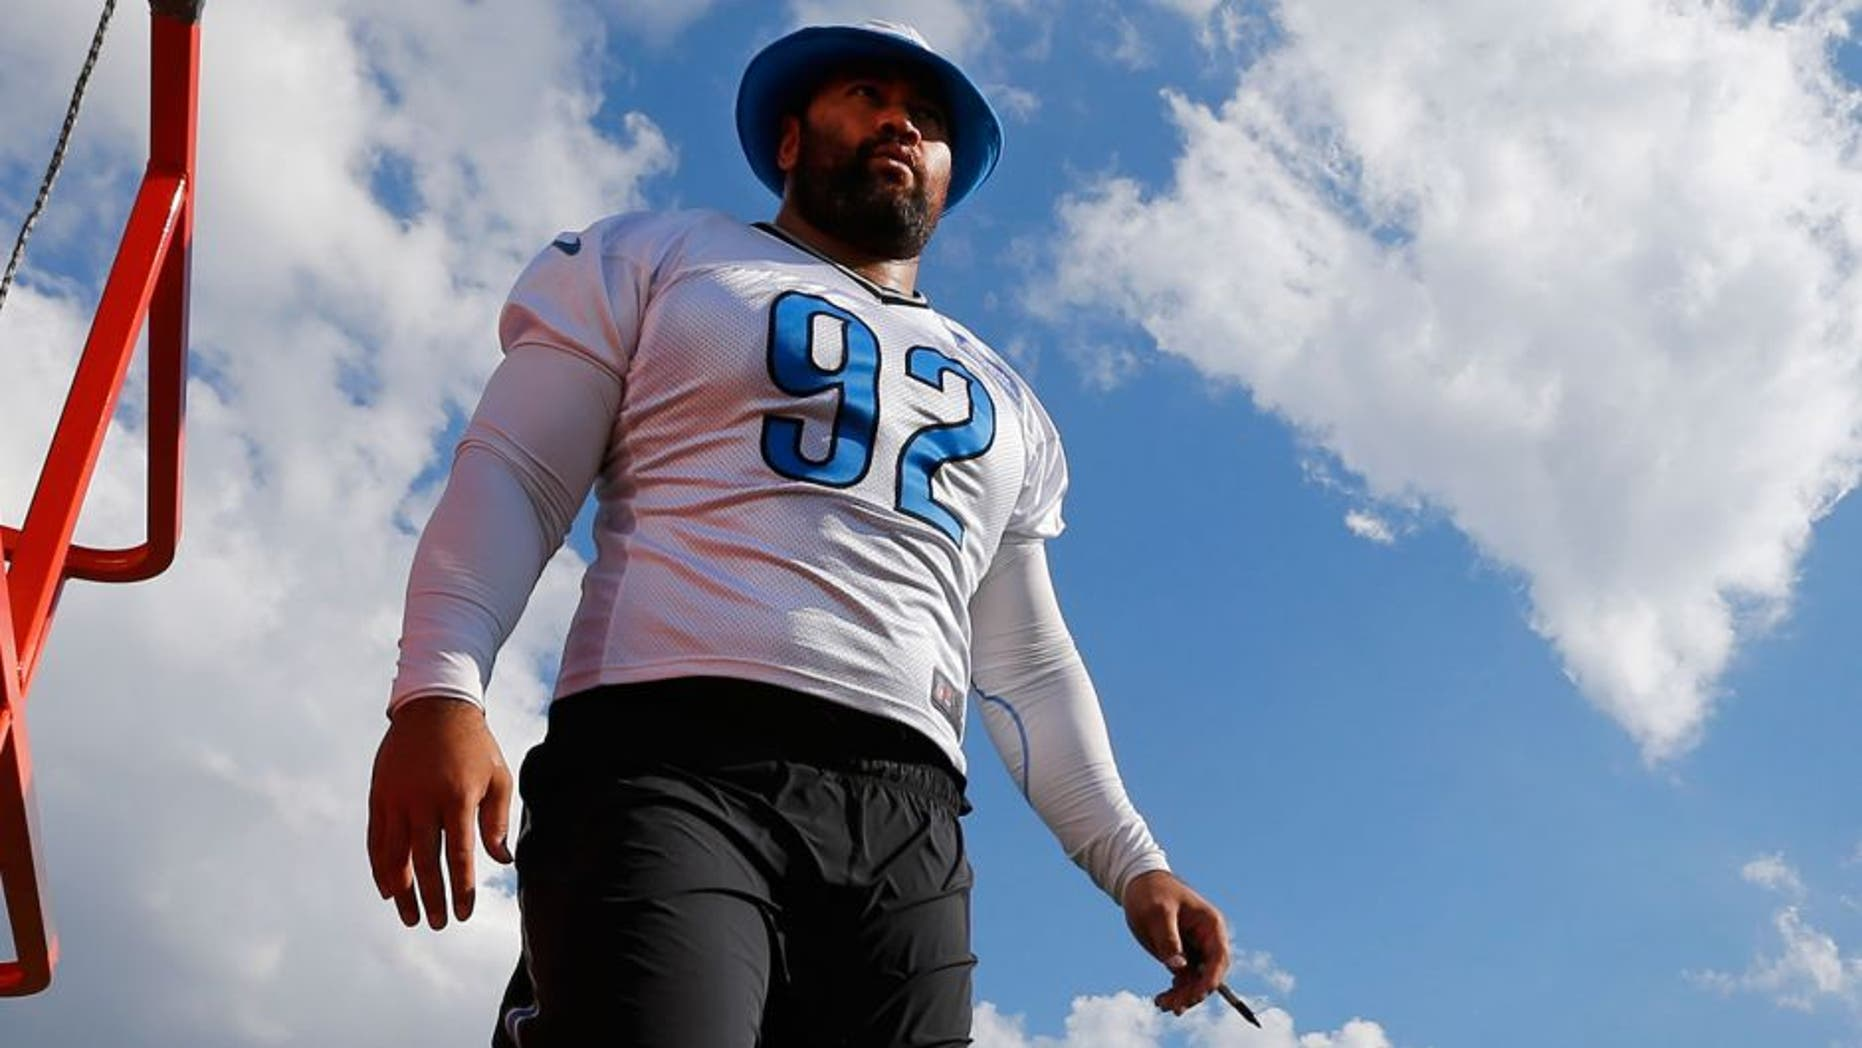 Detroit Lions defensive tackle Haloti Ngata walks on the practice field during NFL football training camp in Allen Park, Mich., Monday, Aug. 3, 2015. (AP Photo/Paul Sancya)